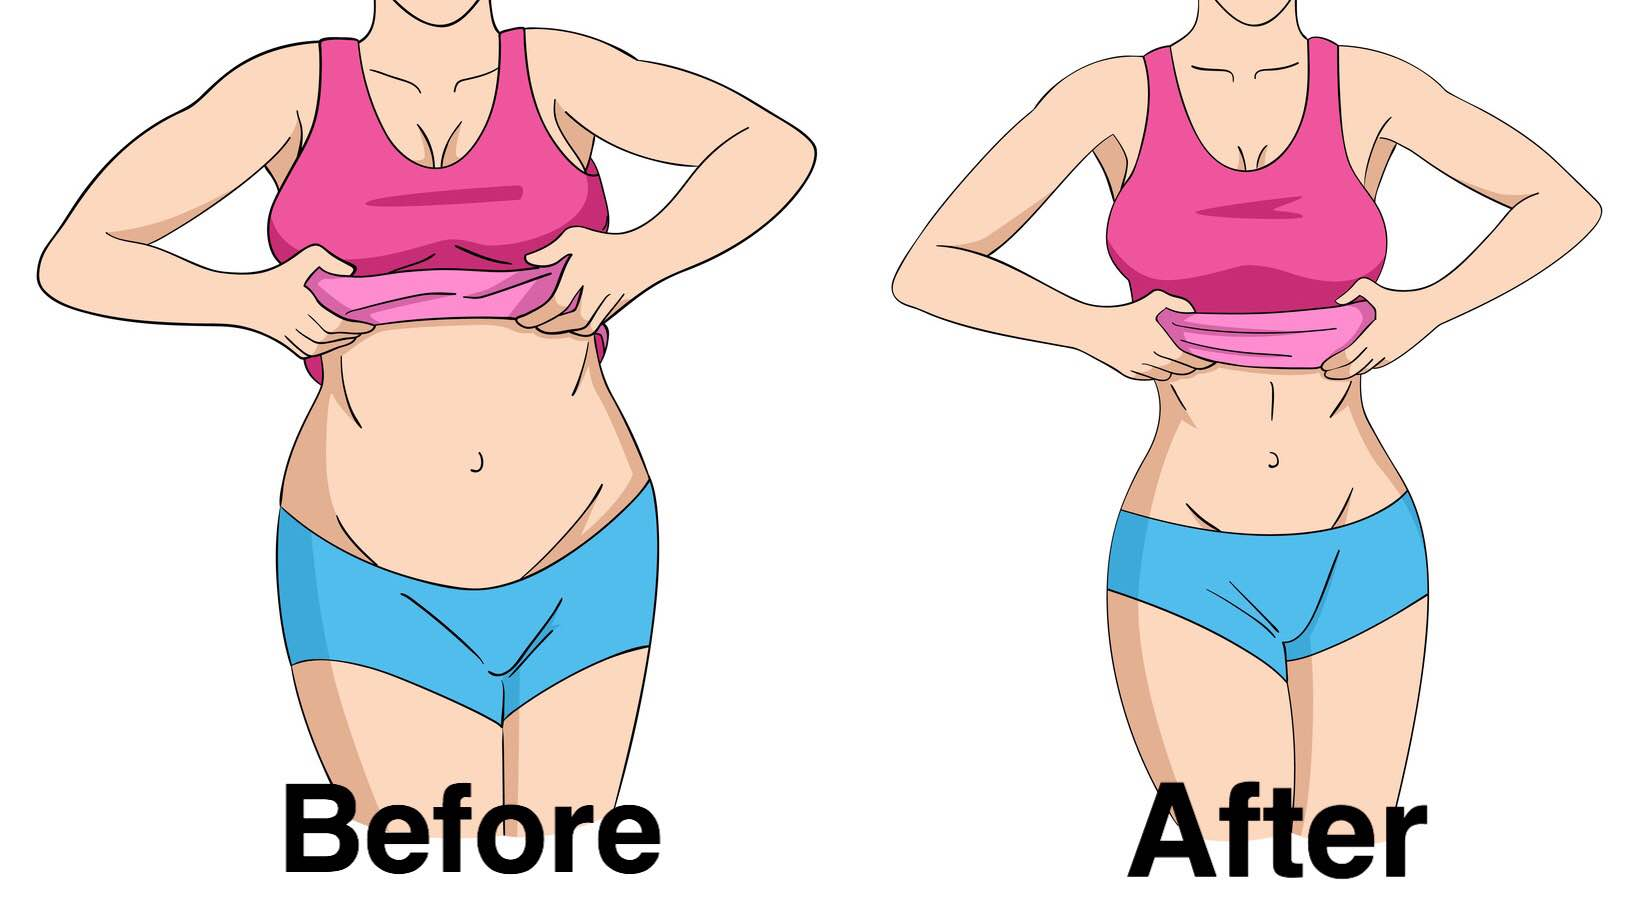 We Should Try These 10 Vegetable Foods To Lose Belly Fat When Compare With Other Foods --- Nutrition